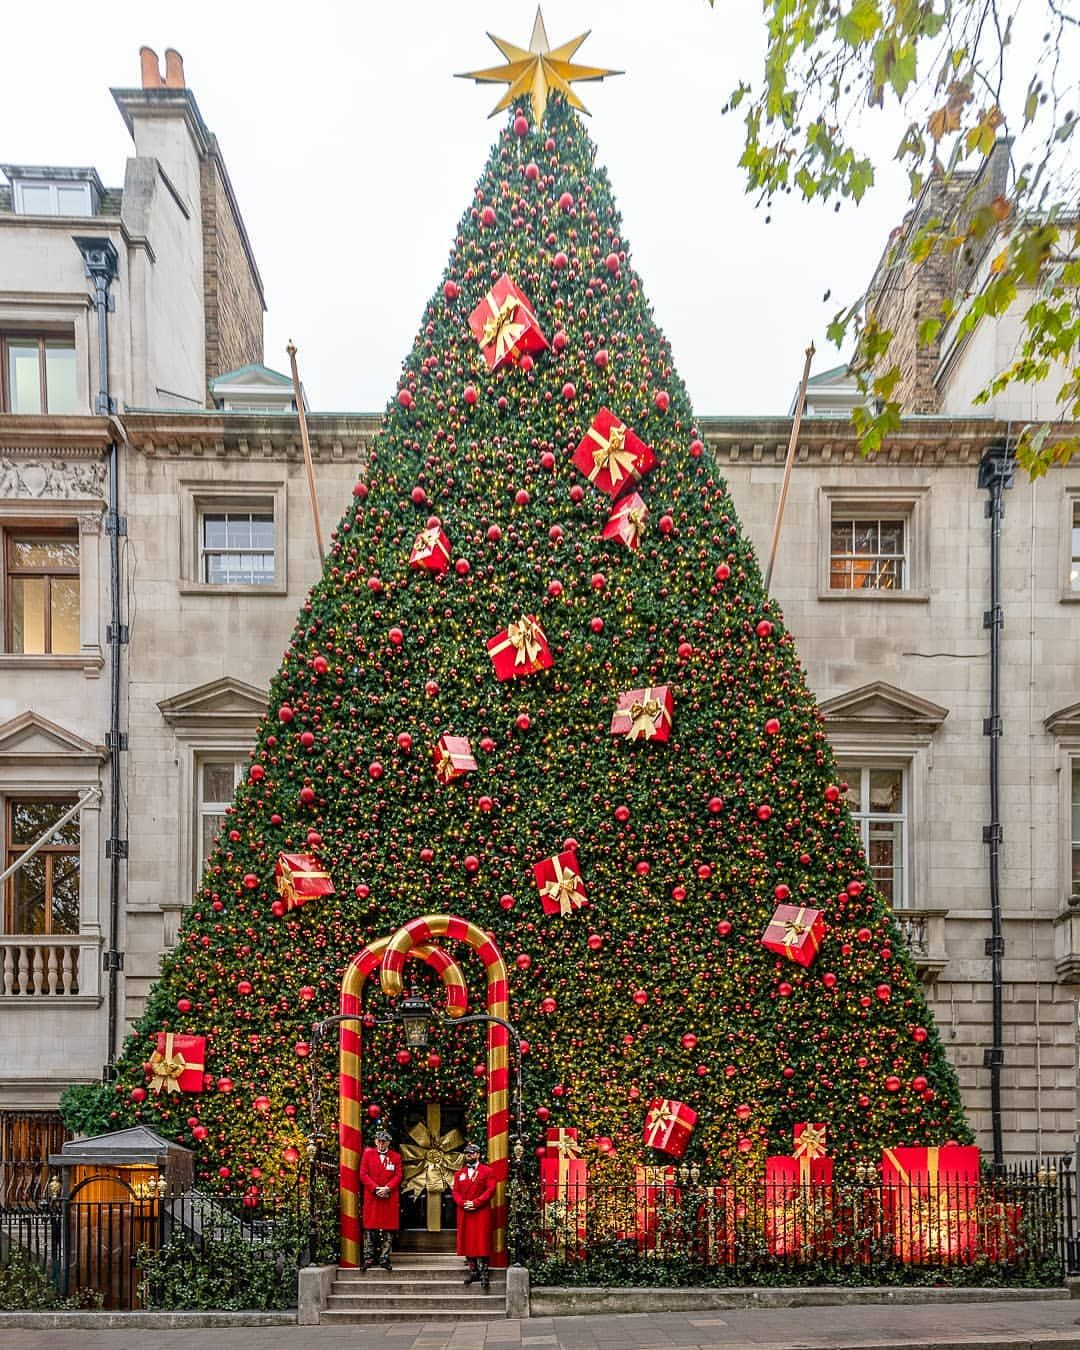 London Uk Europe On Instagram It S Looking Like Christmas Down At Annabels London Christmas Cool Christmas Trees Funny Christmas Tree